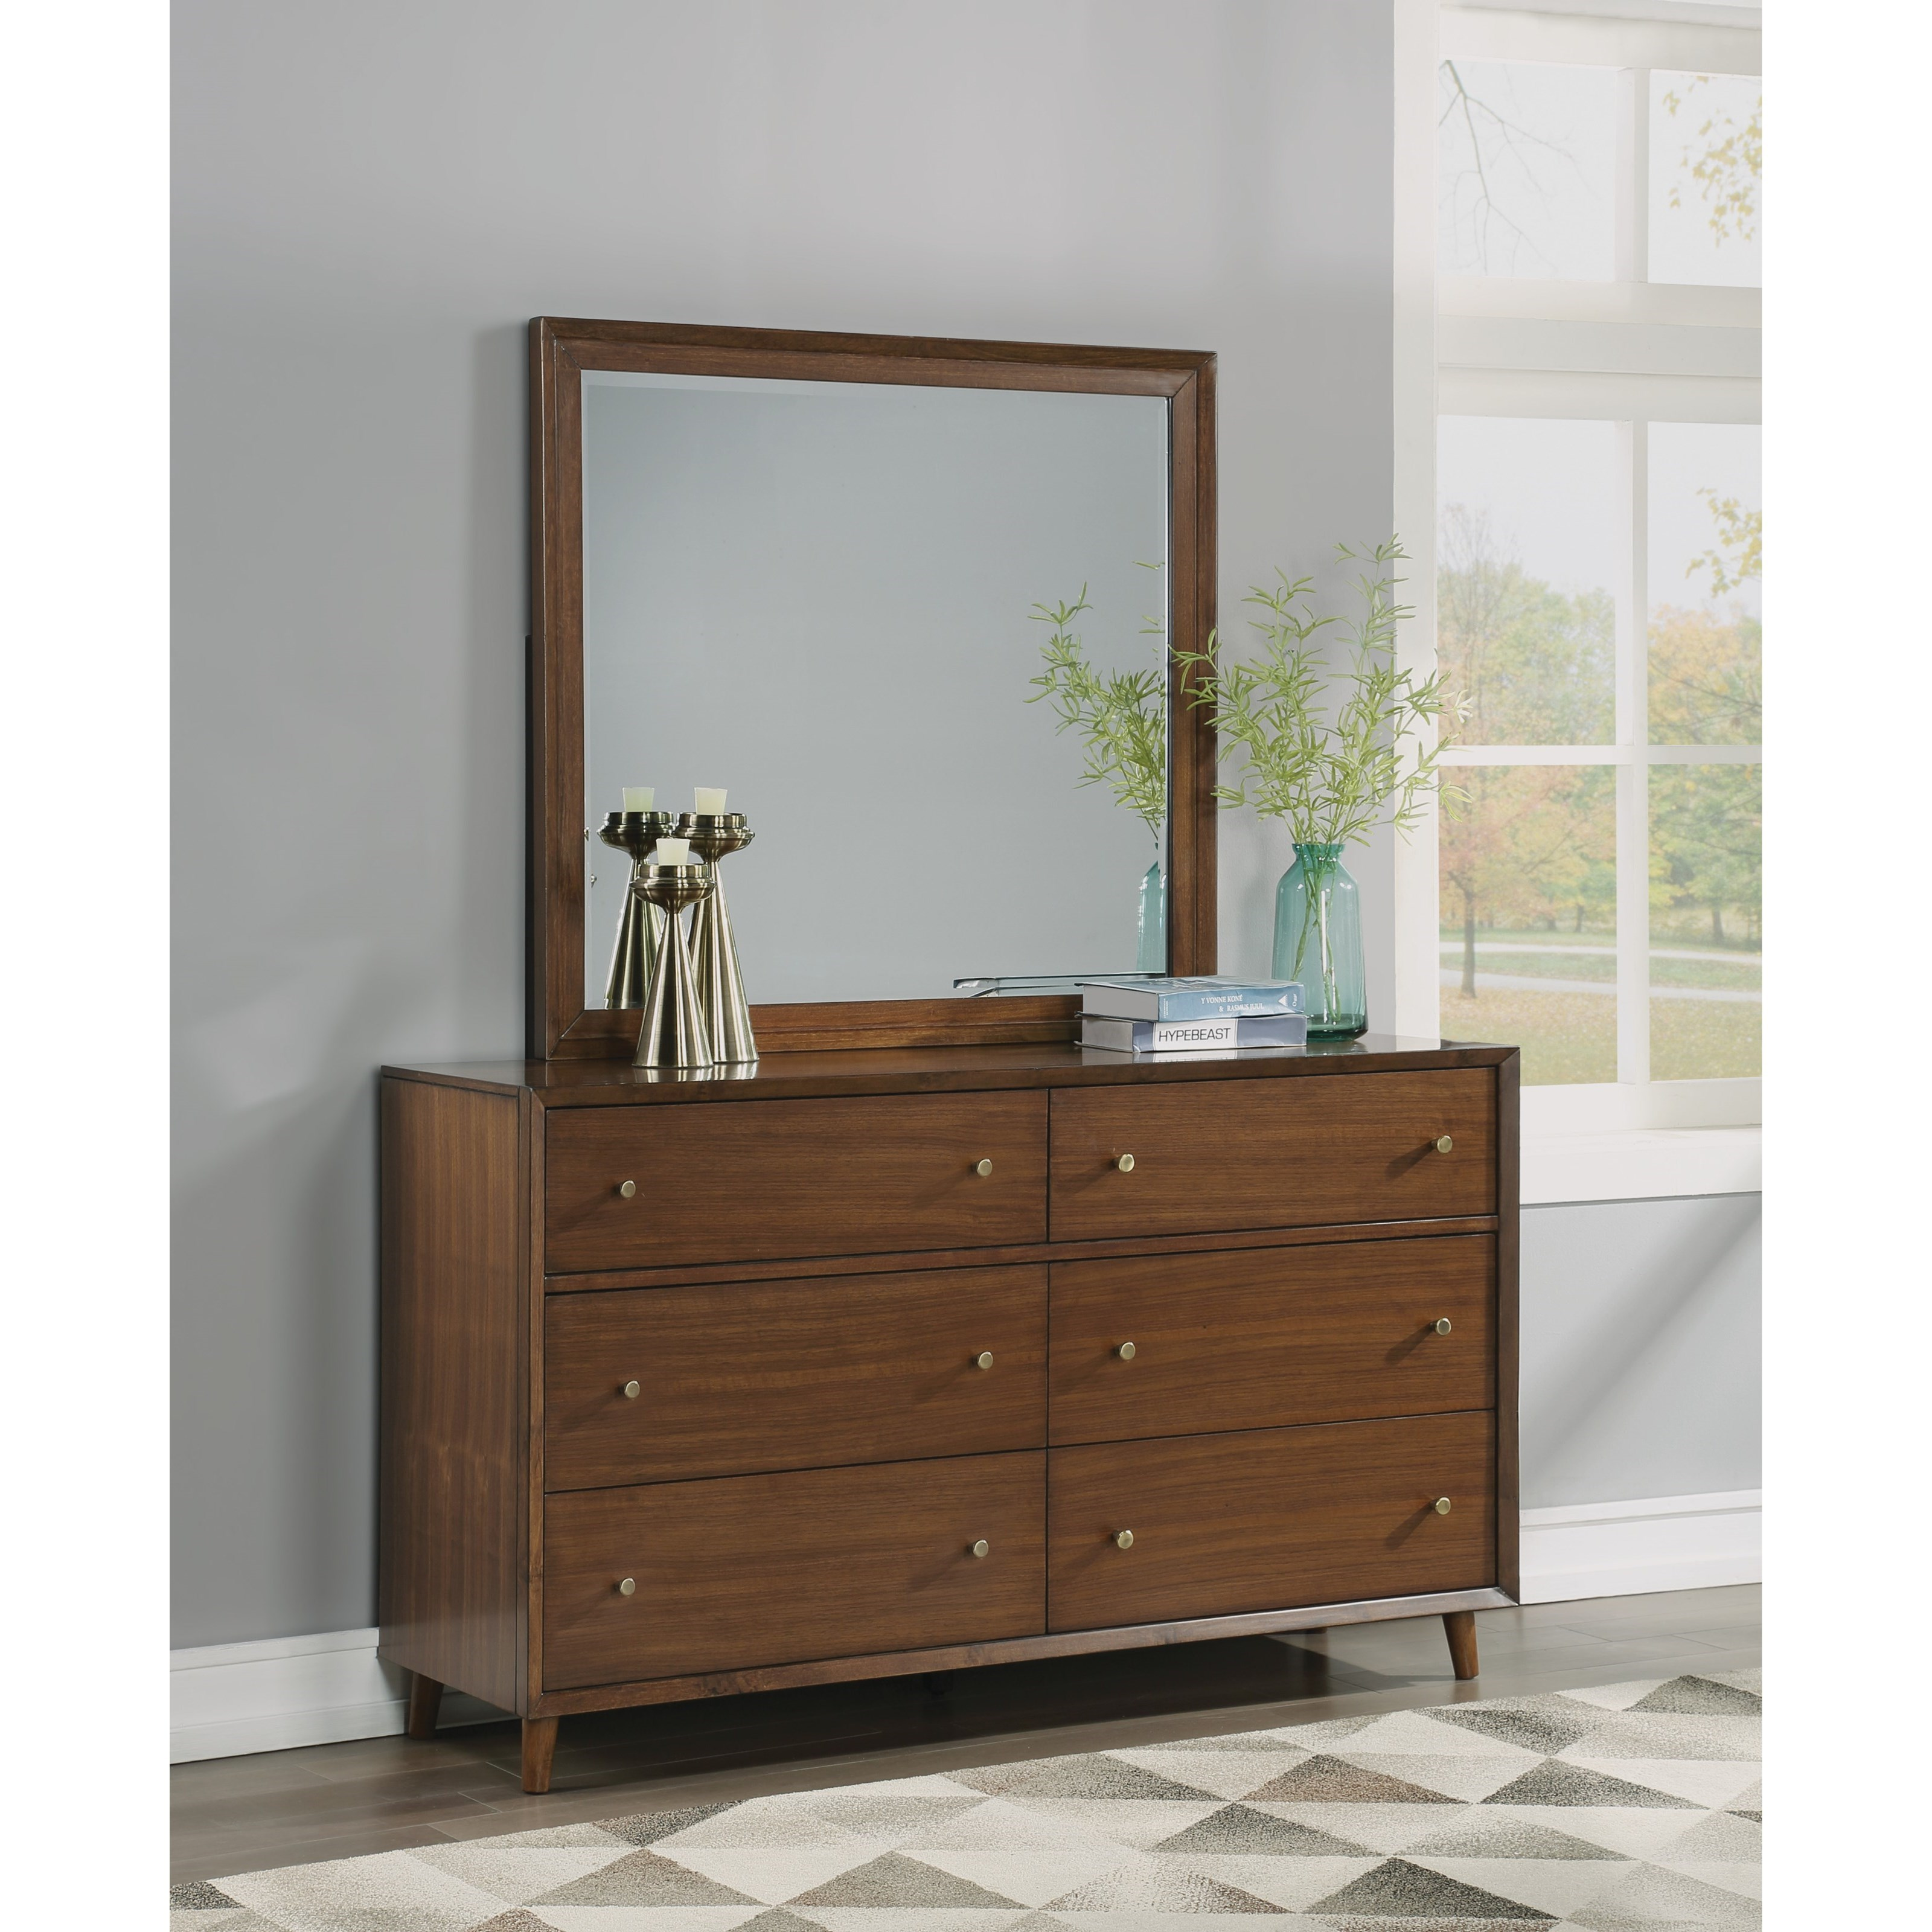 Ludwig Dresser and Mirror Set by Flexsteel Wynwood Collection at Godby Home Furnishings